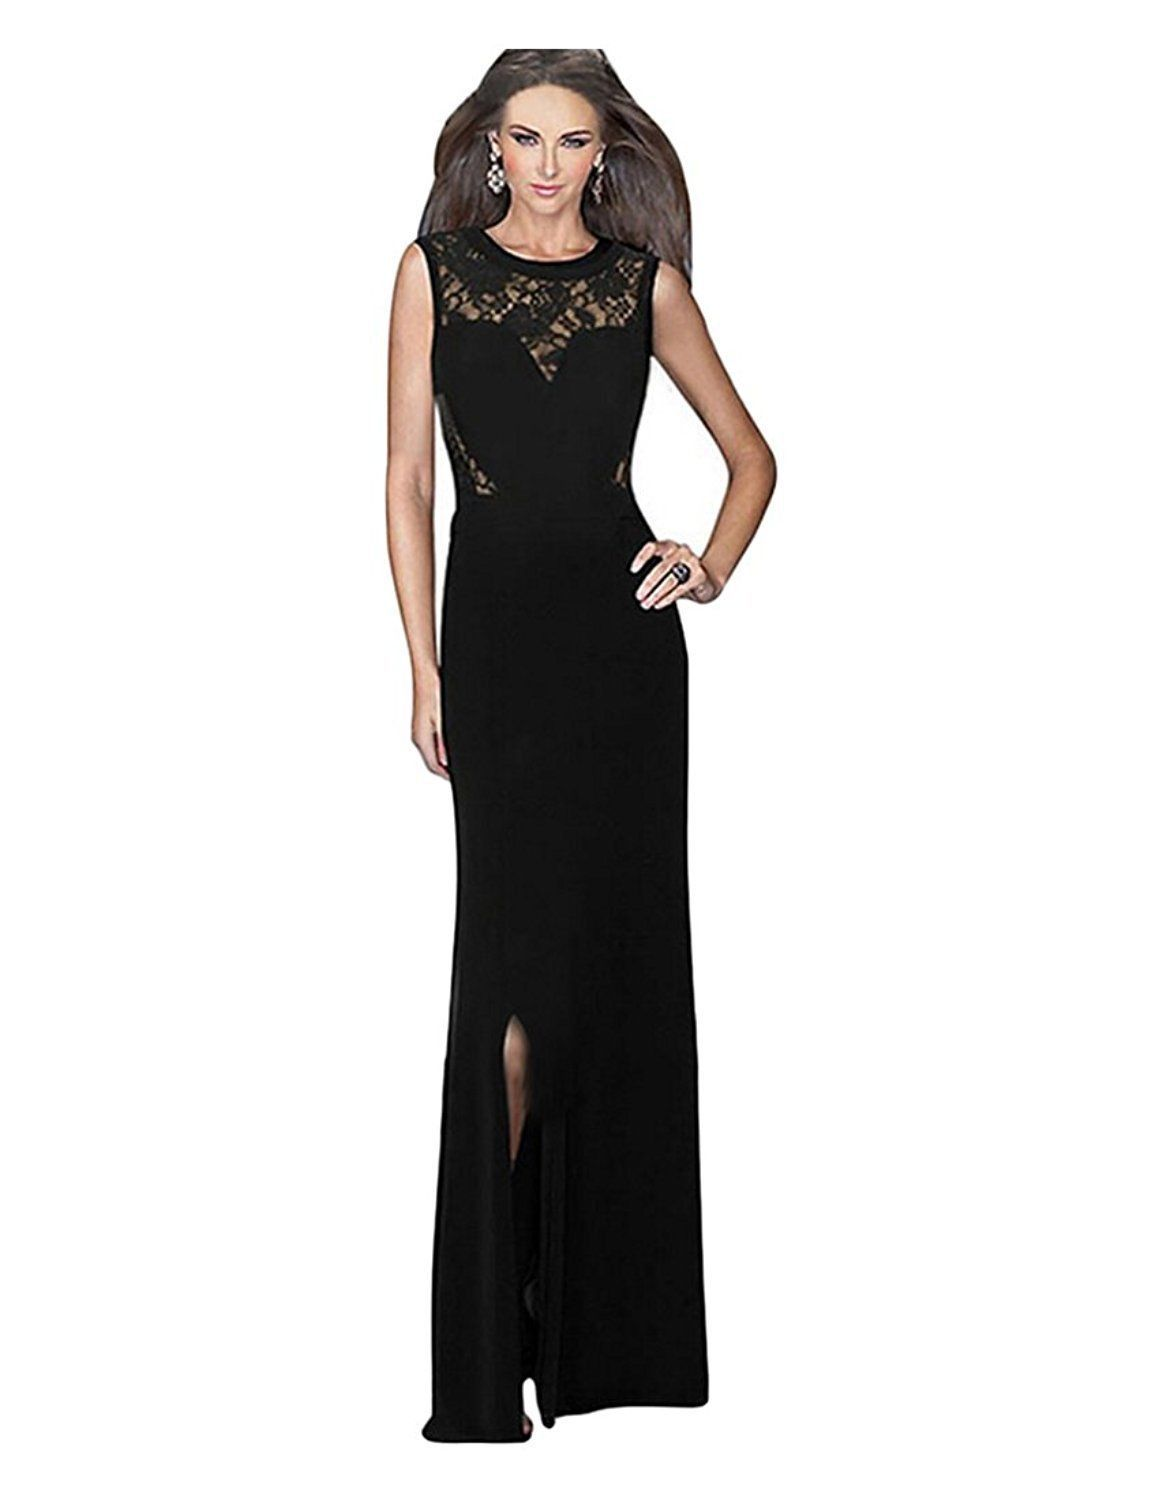 Awesome awesome ca mode womenus maxi lace formal gown ball evening